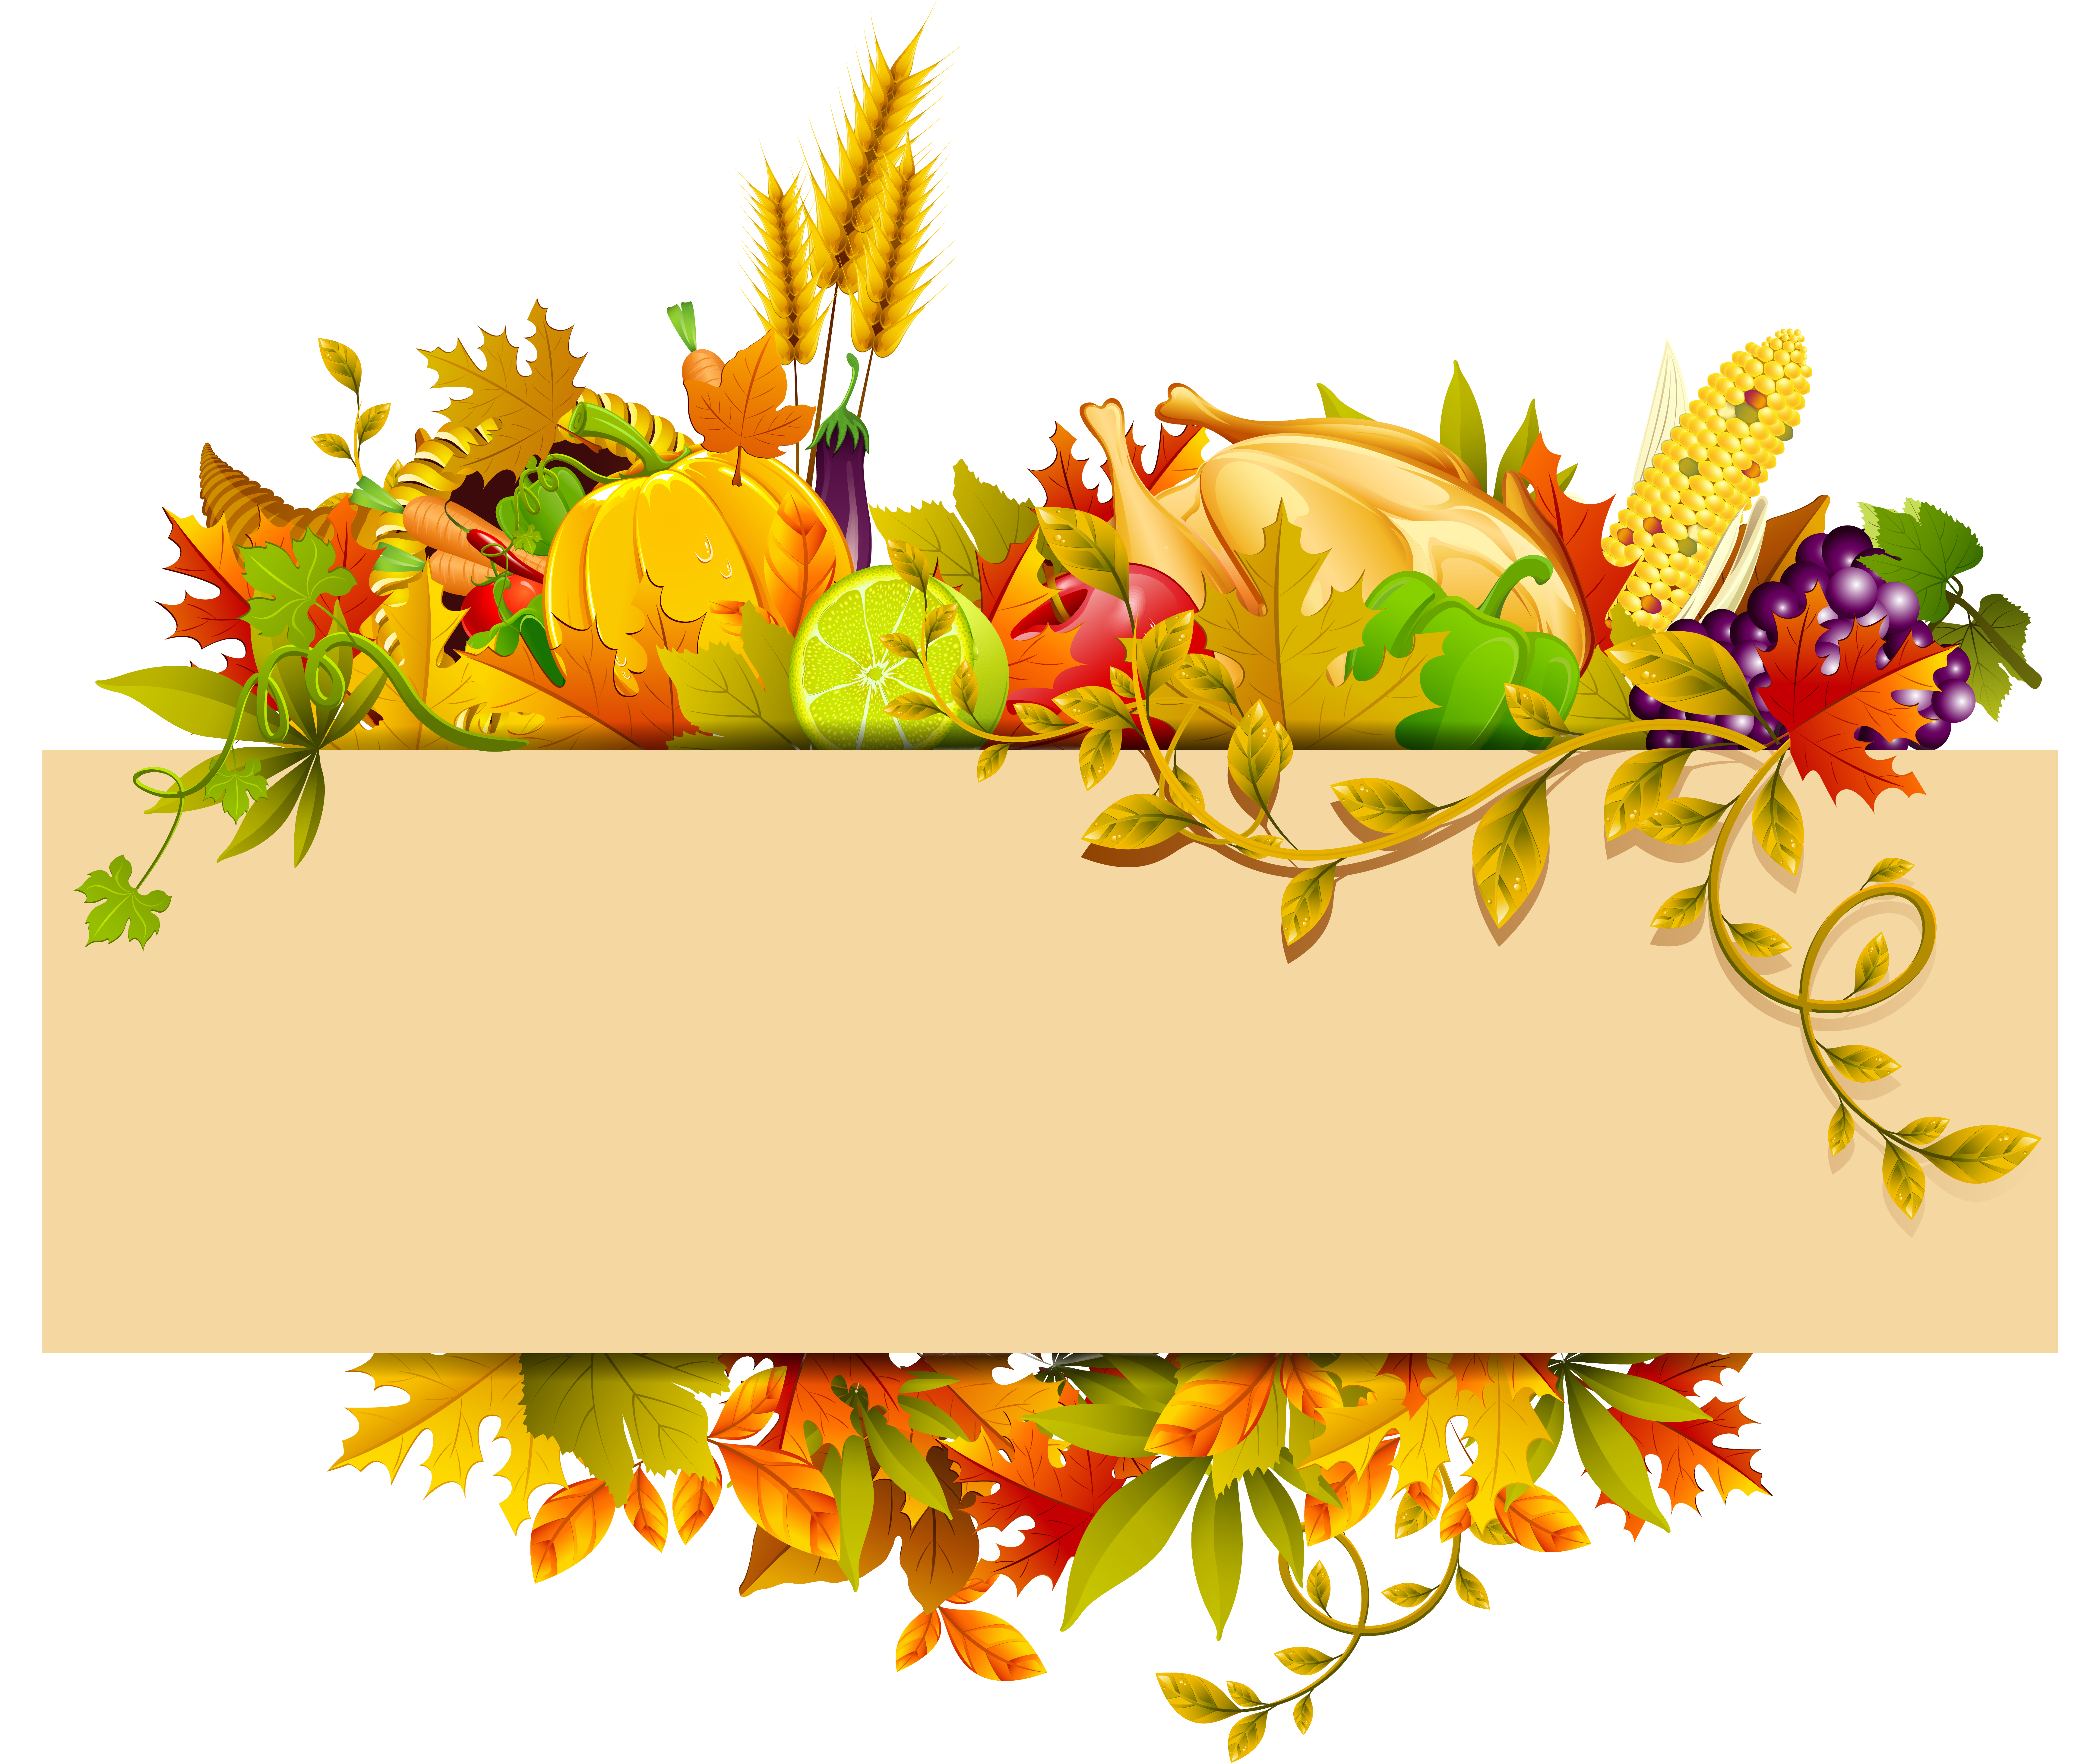 Harvest Autumn Thanksgiving Clip art.